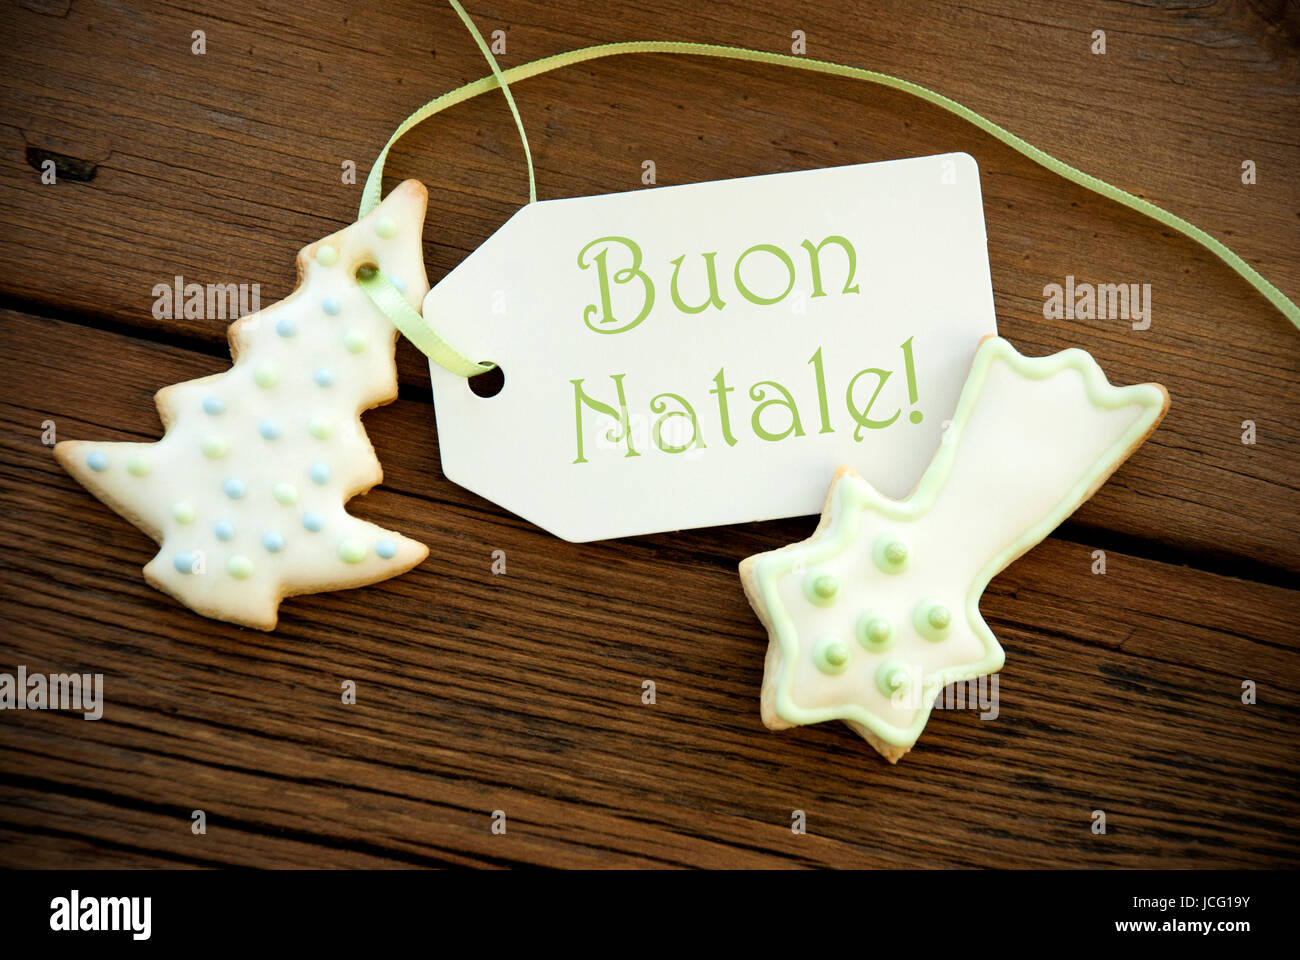 Buon Natale Meaning In English.Italian Words Stock Photos Italian Words Stock Images Alamy